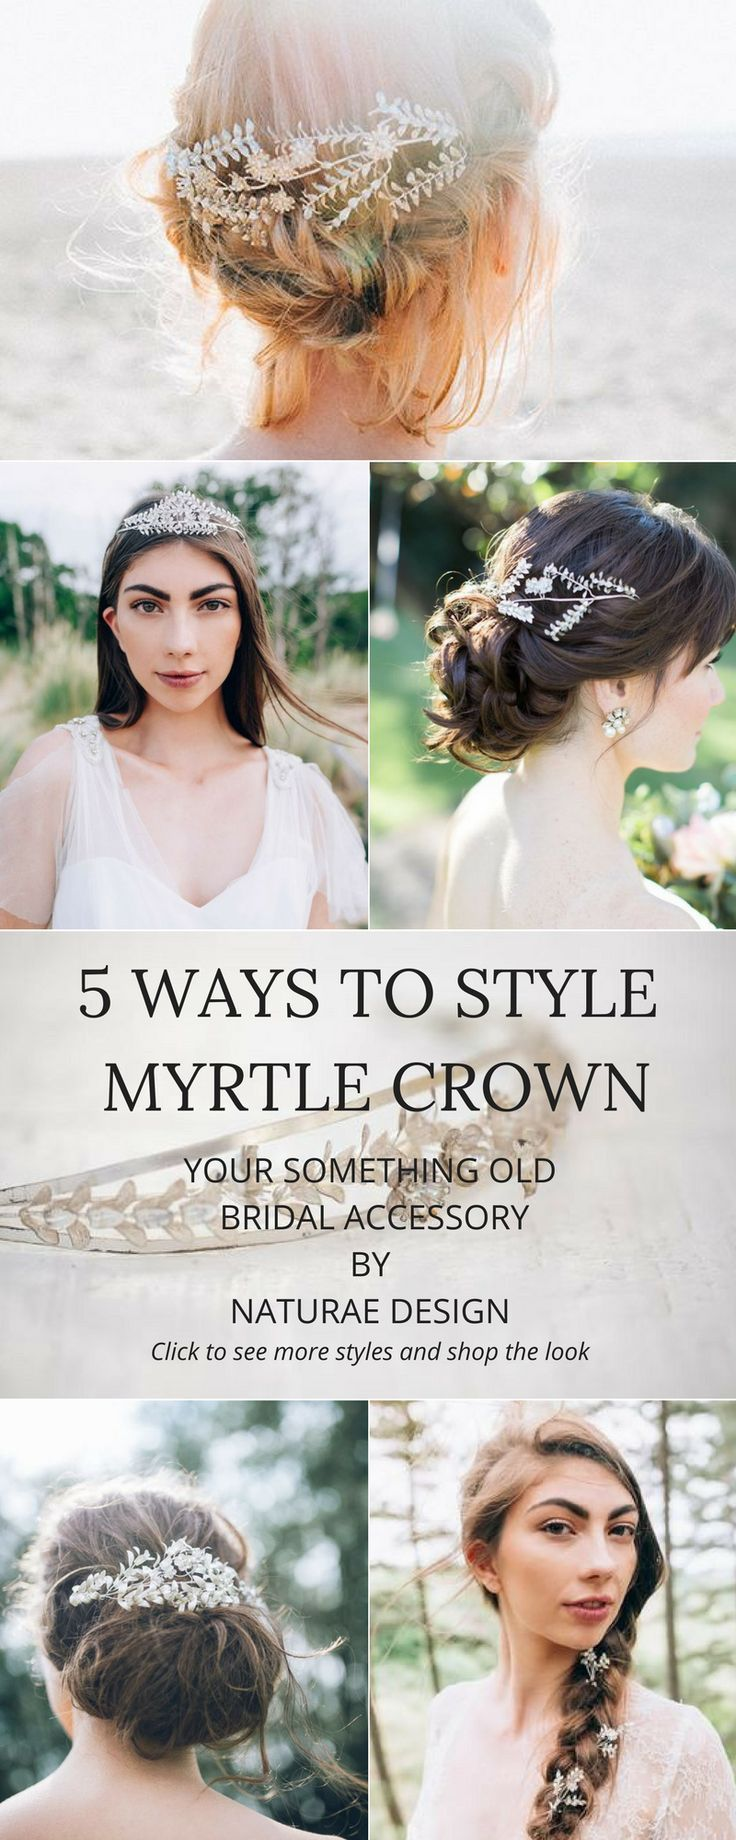 Antique Myrtle Crowns curated and restored by Naturae Design. Myrtle leaves and flowers are commonly worn and used for adornment in weddings throughout ancient Europe. It's a symbol of love and fertility associated with goddesses Aphrodite and Demeter. Th